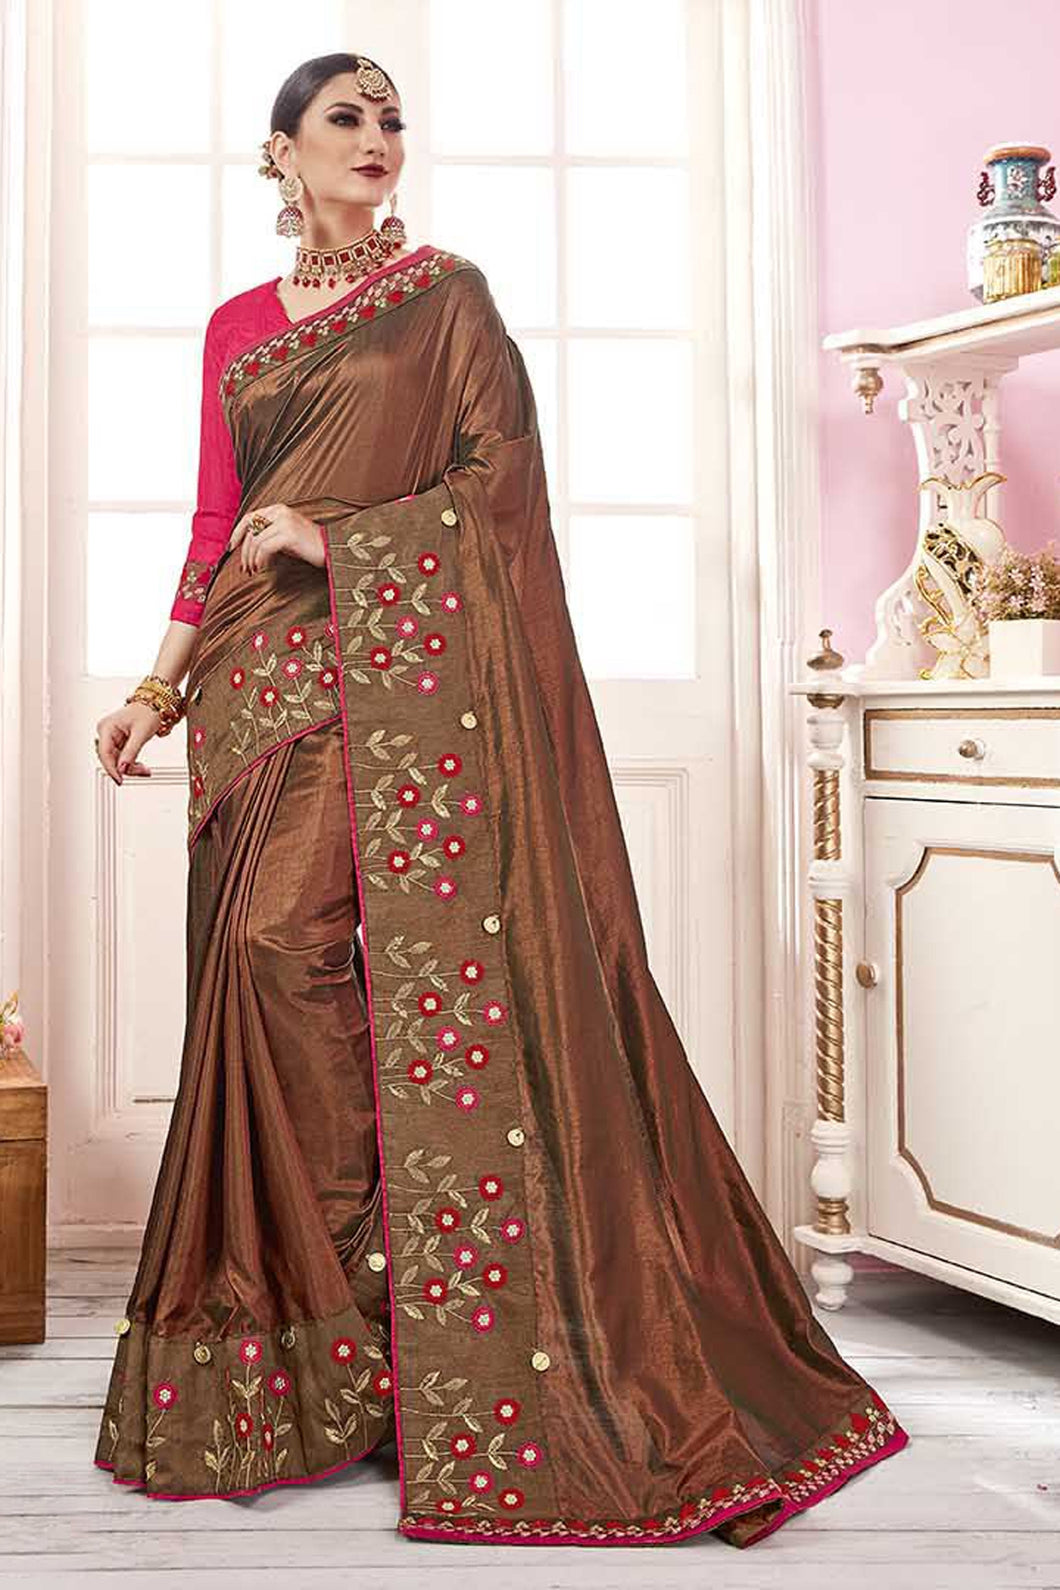 Bhelpuri Brown Satin Georgette Embroidered Lace Border Saree with Blouse Piece